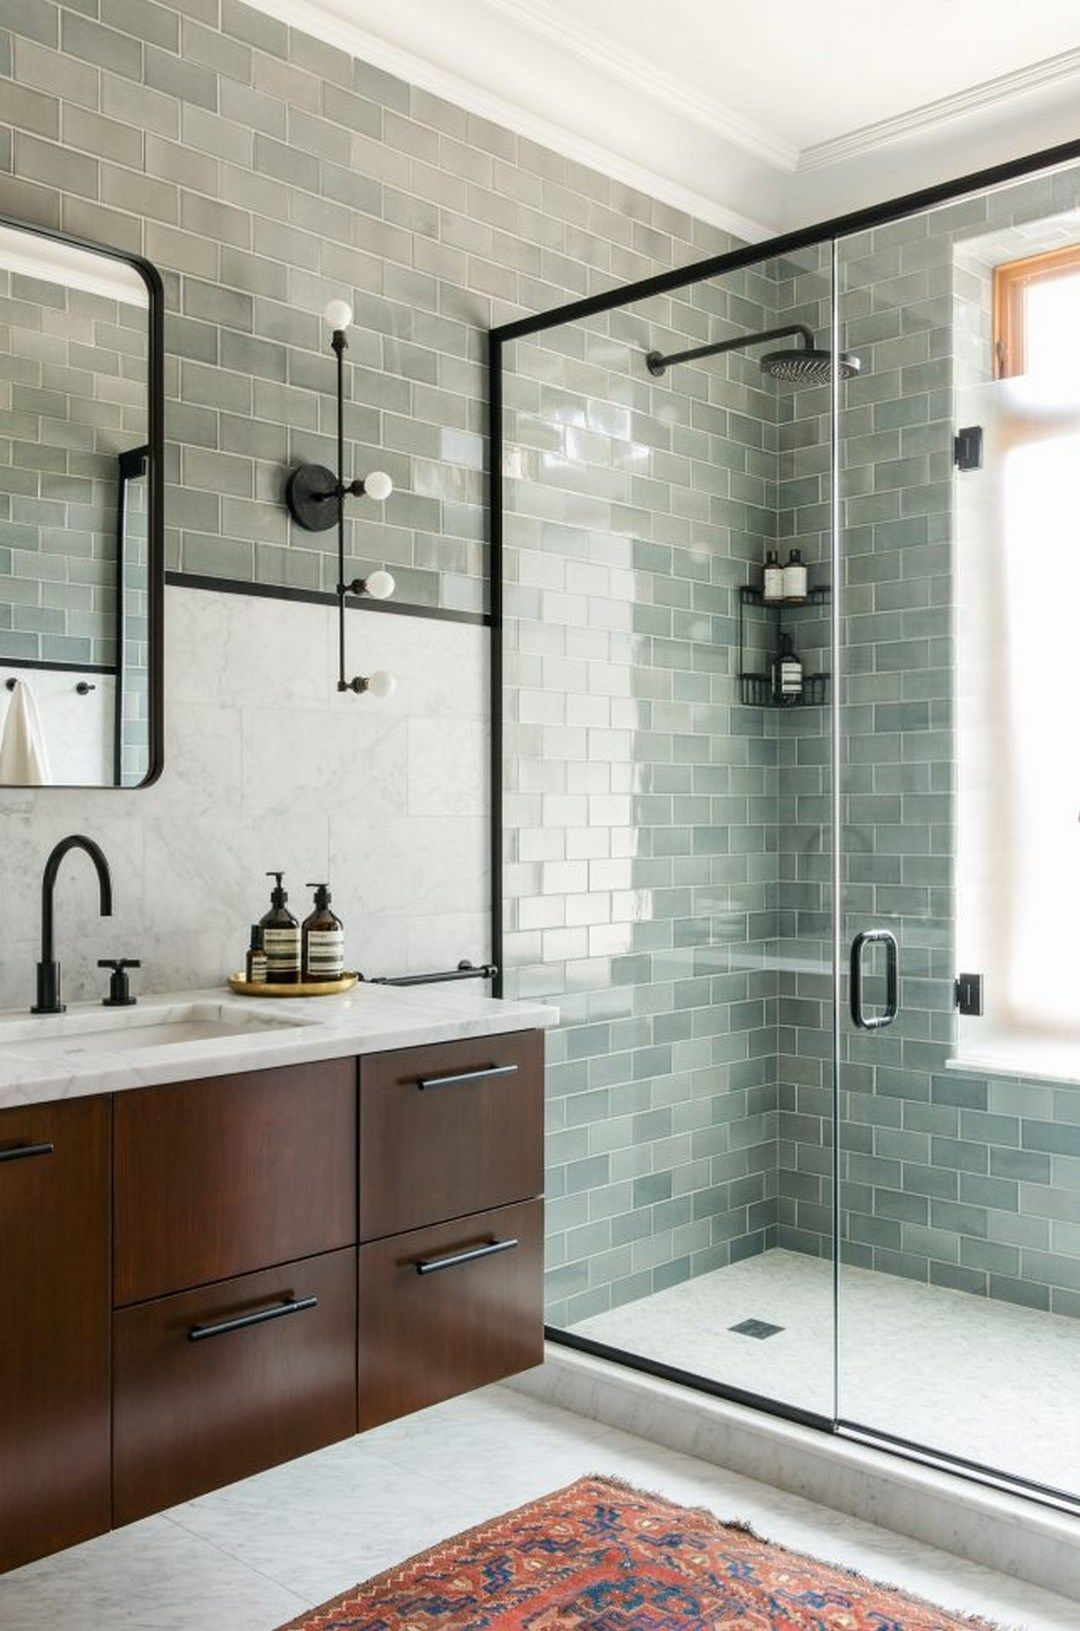 99 new trends bathroom tile design inspiration 2017 54 99 new trends bathroom tile design inspiration 2017 54